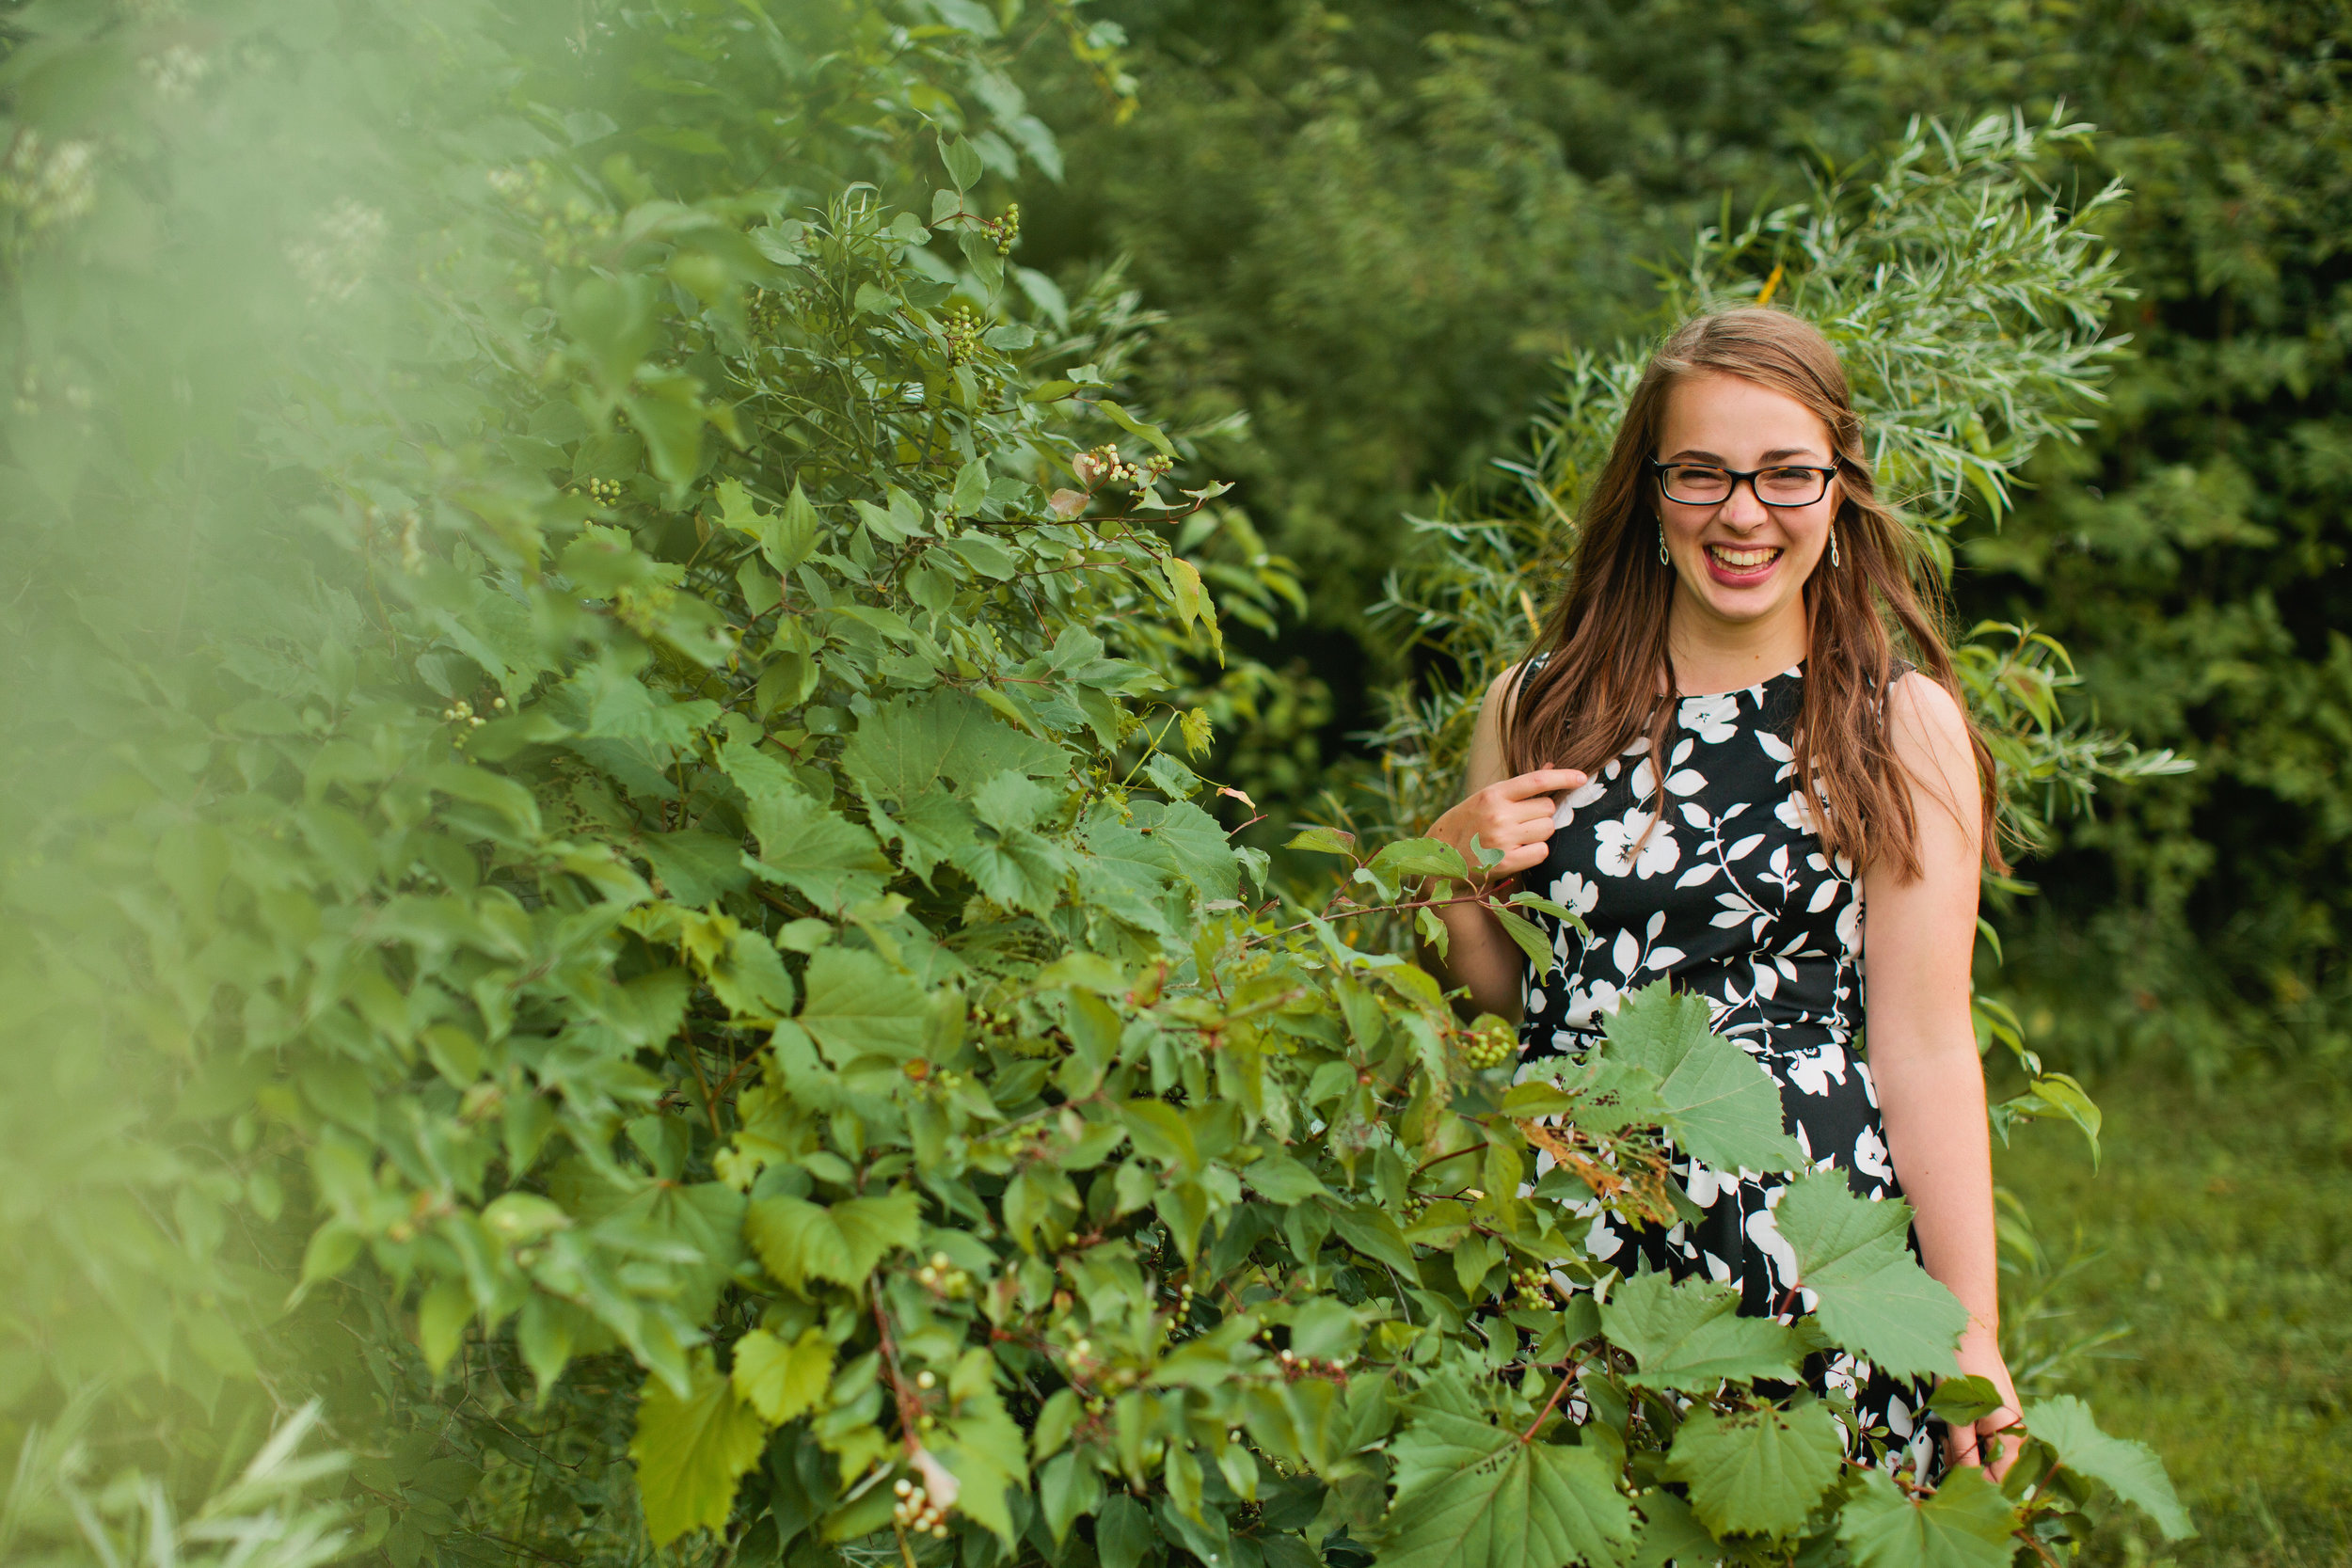 hiking forest senior photo locations in Des Moines